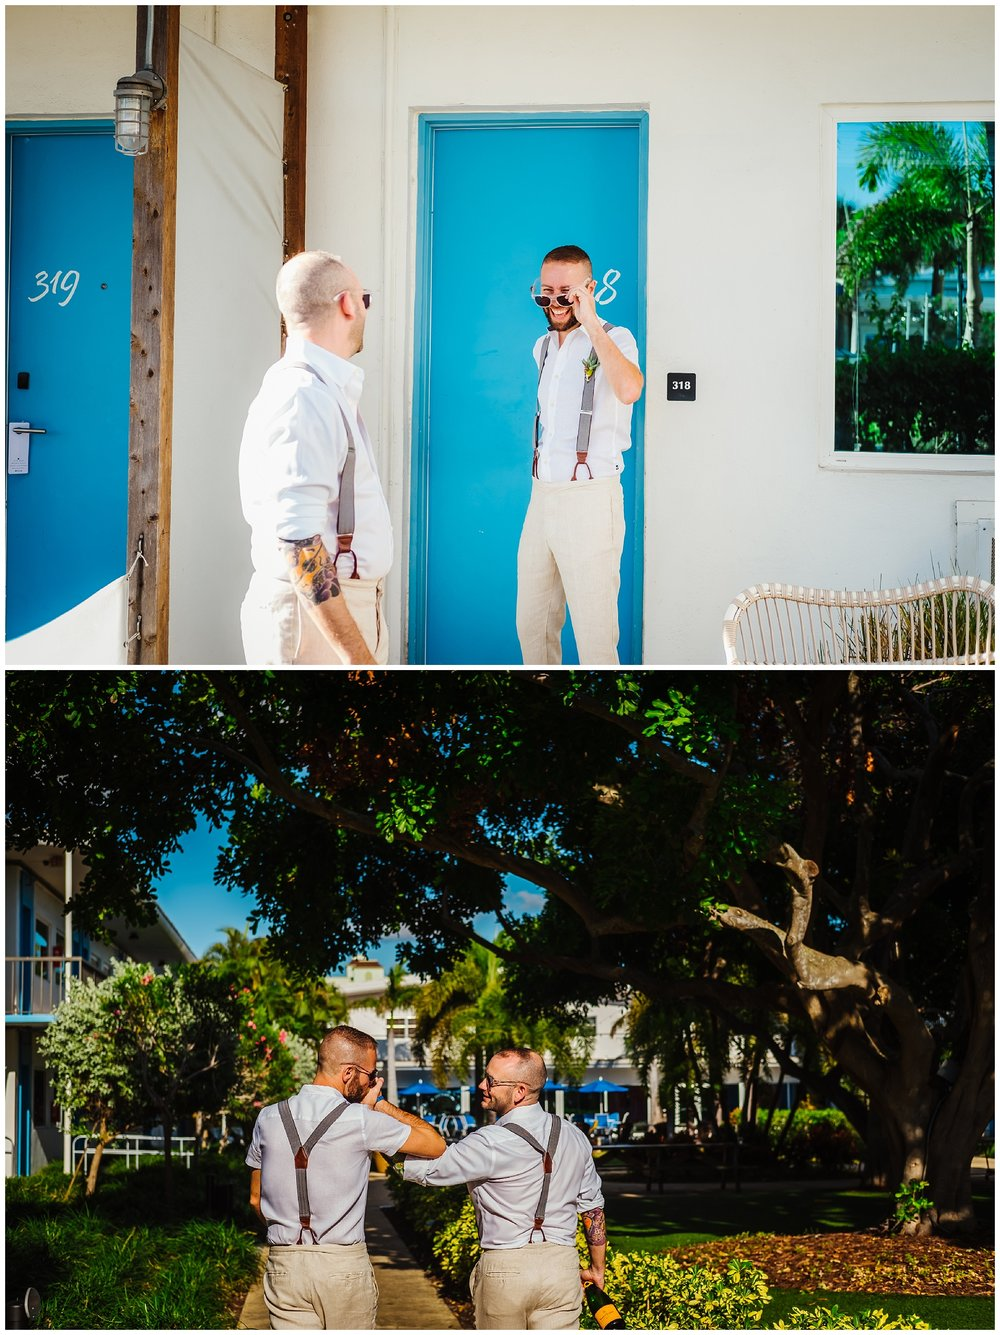 st-pete-same-sex-wedding-photographer-equal-love-gay-drag-queens_0012.jpg